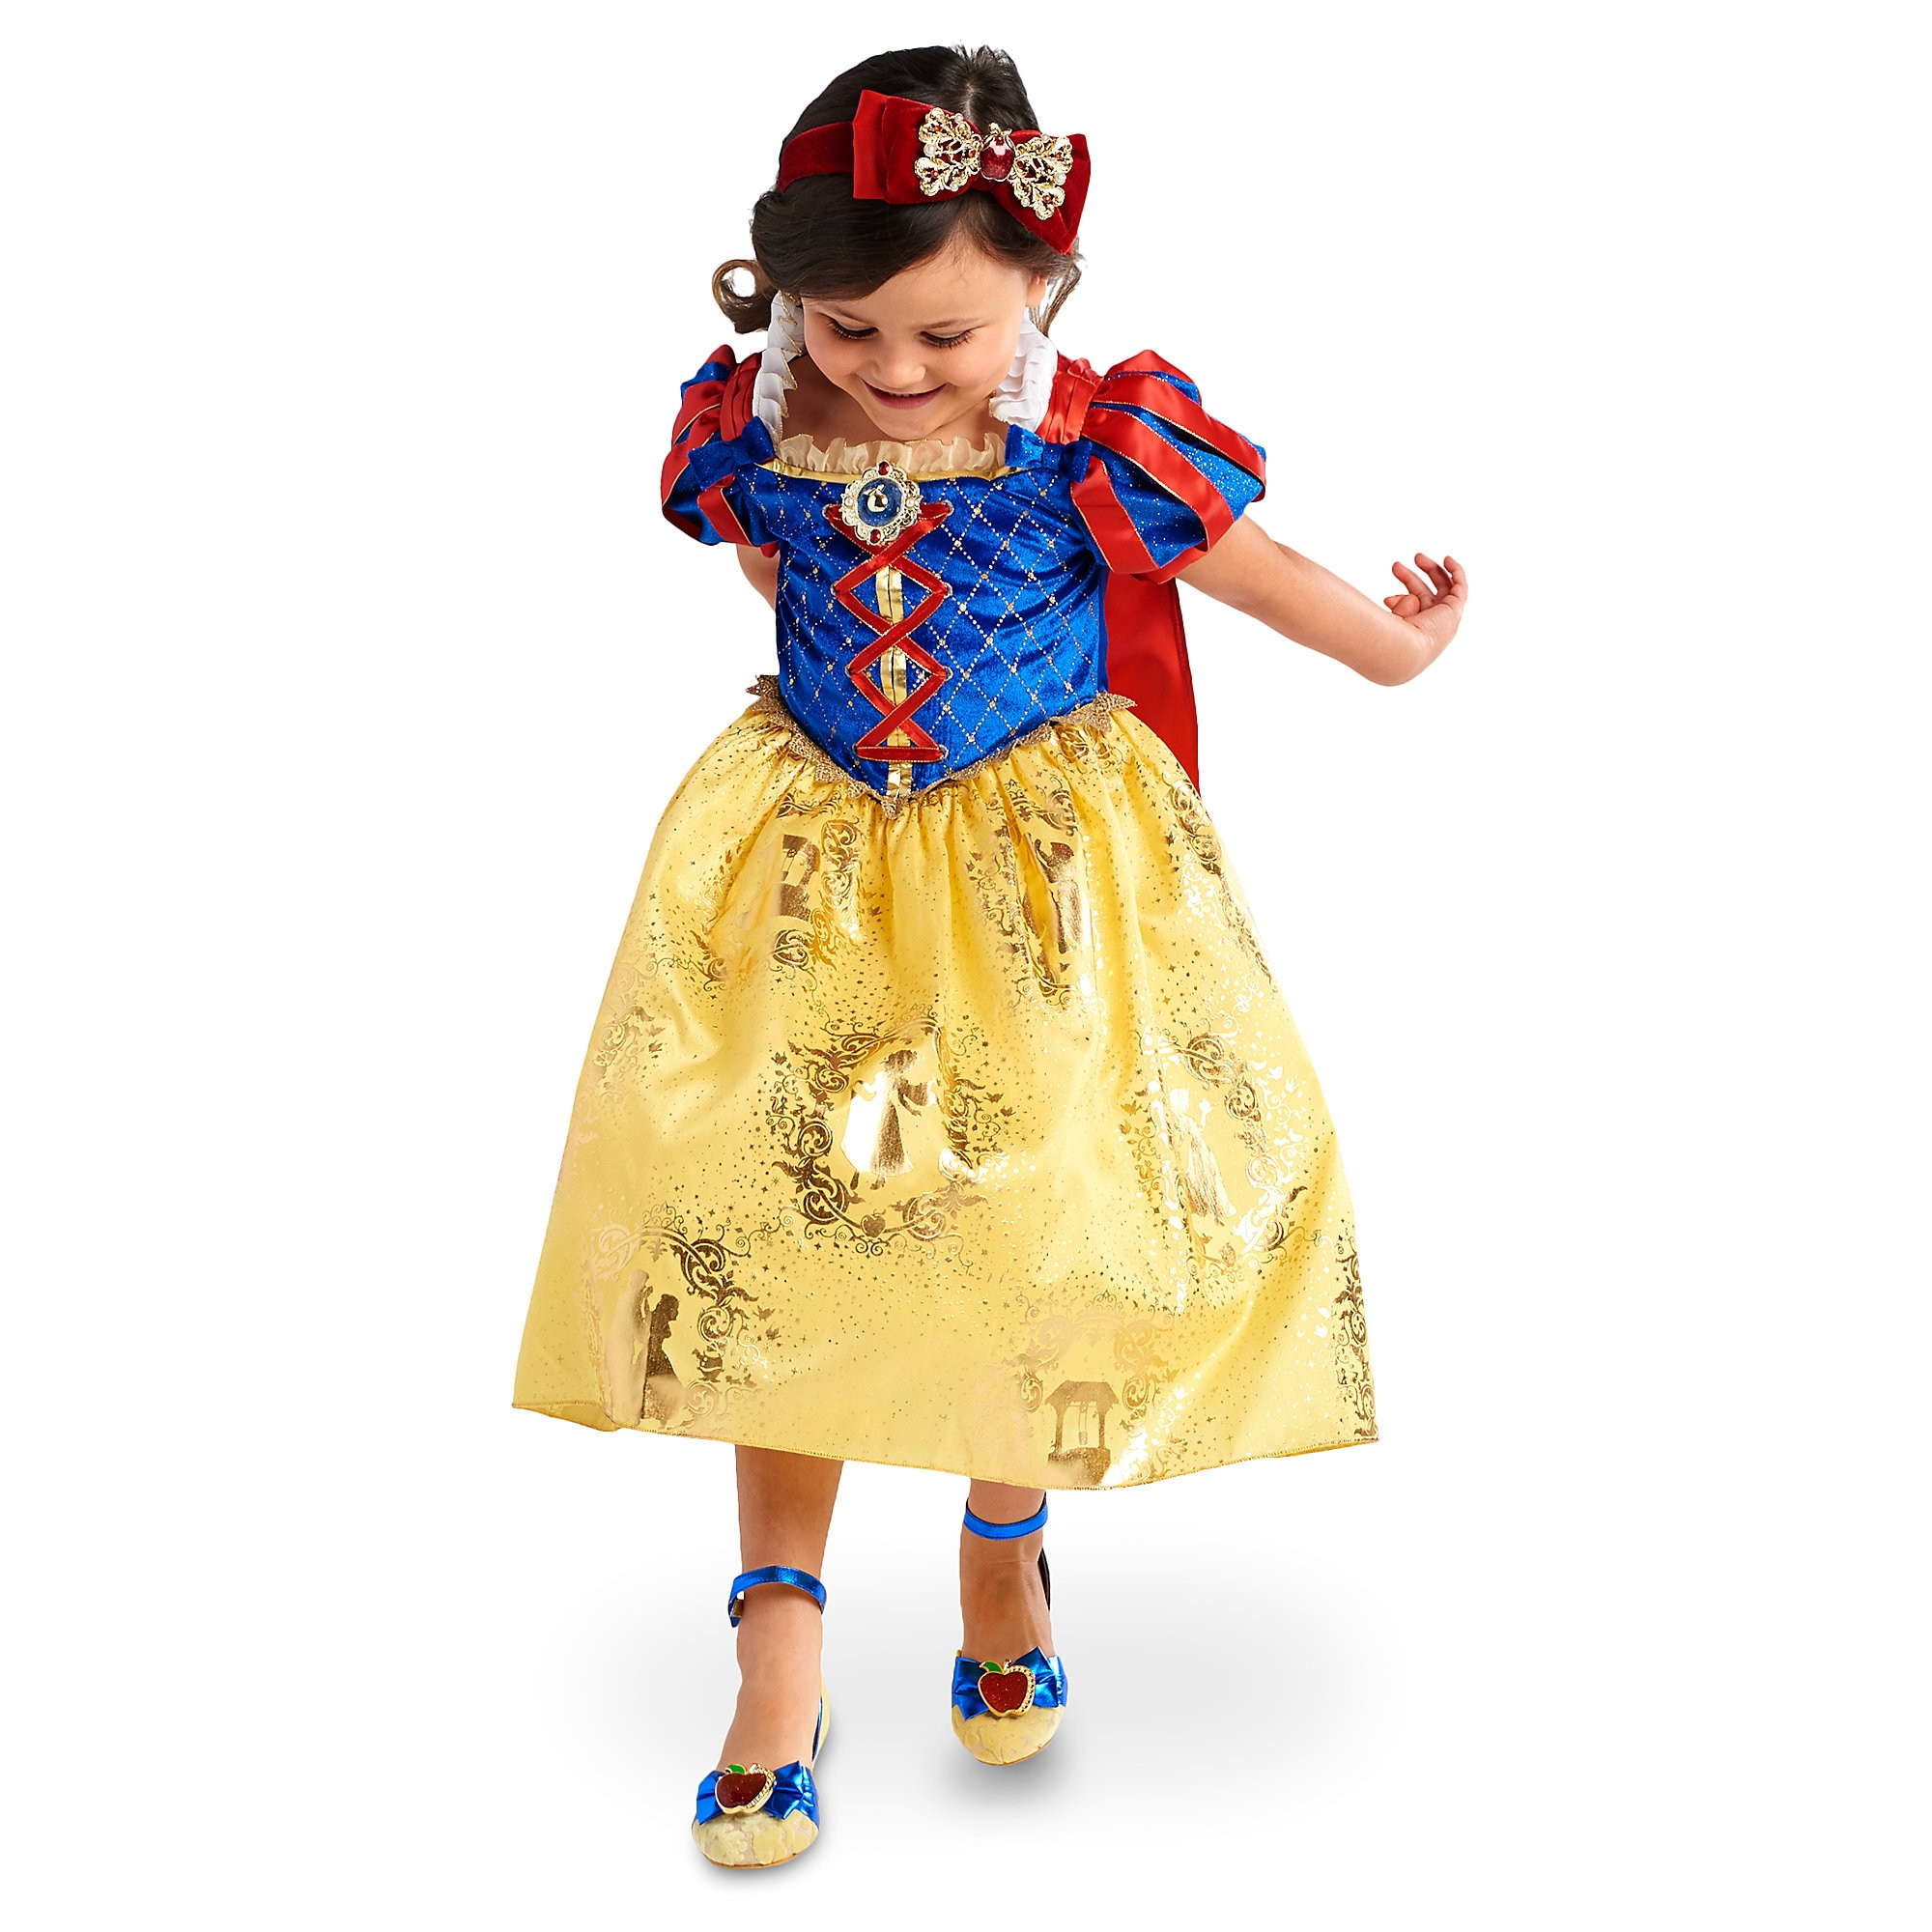 Thumbnail Image of Snow White Costume for Kids # 2  sc 1 st  shopDisney & Snow White Costume for Kids | shopDisney